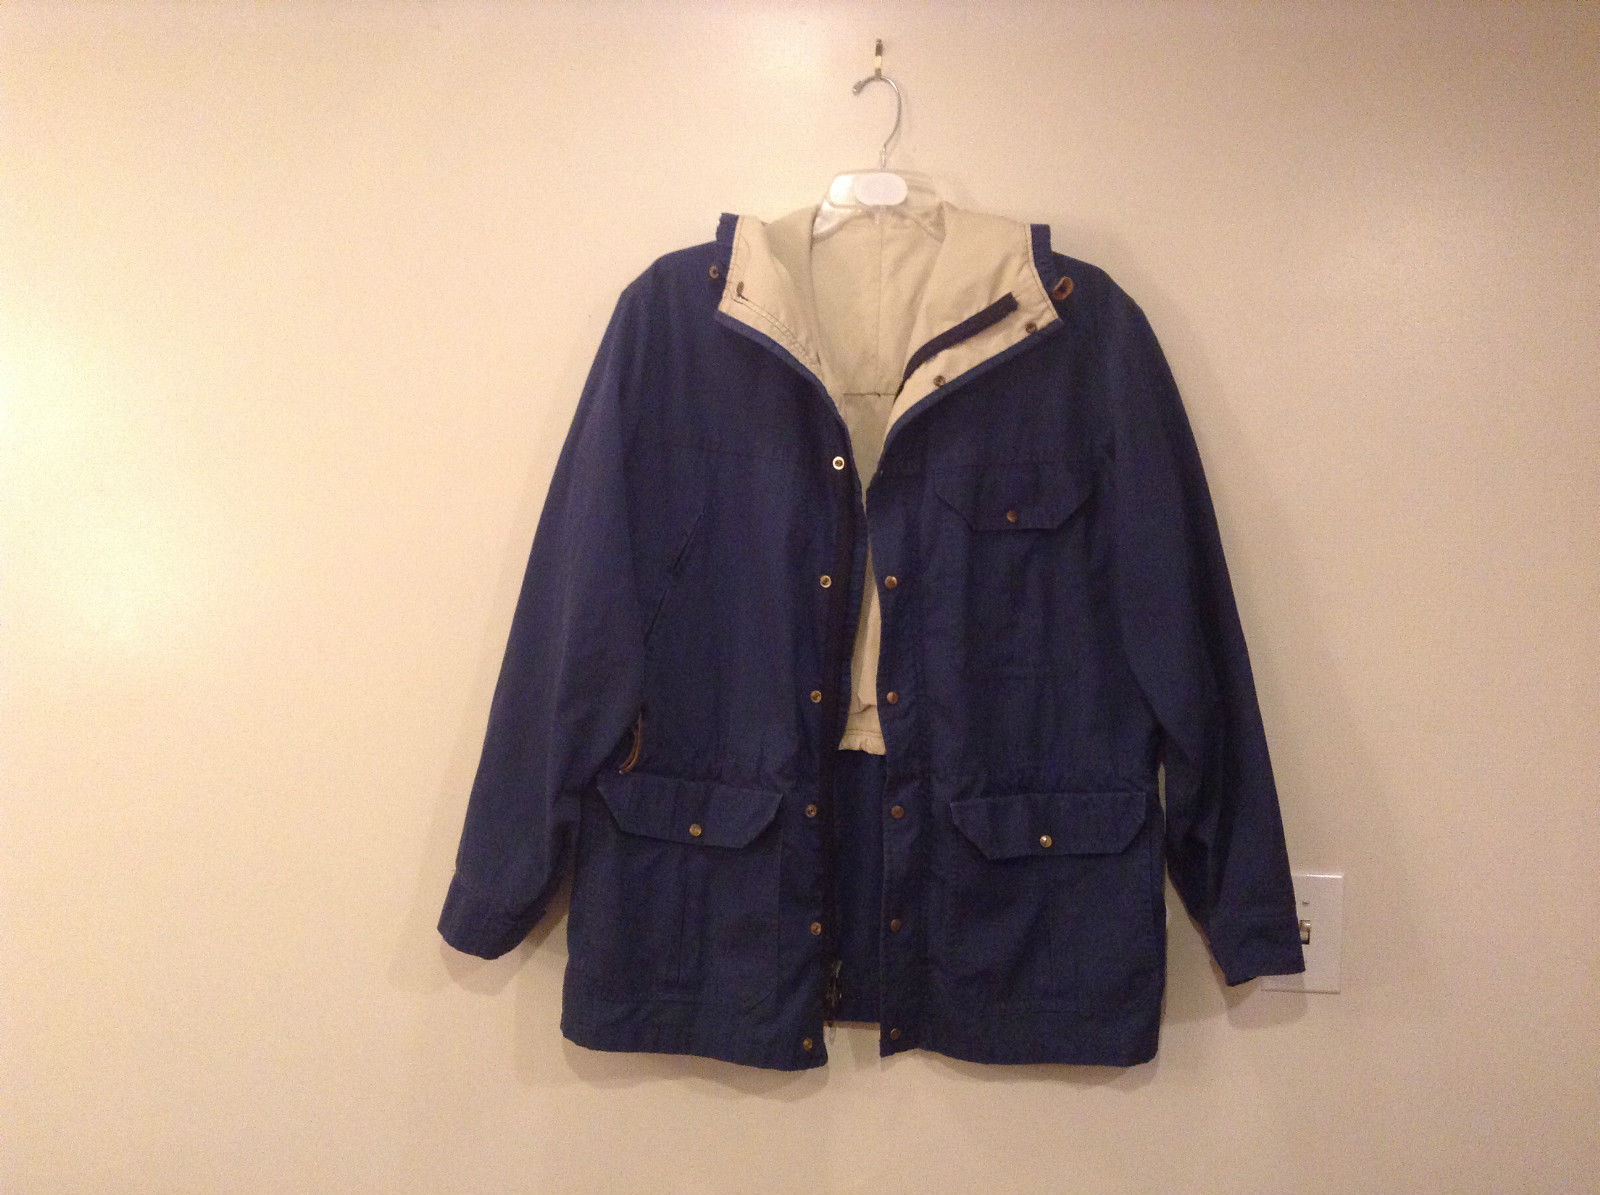 CAMP 7 Dark Blue with Beige Lining Hooded Jacket Lots of Pockets No Size Tag